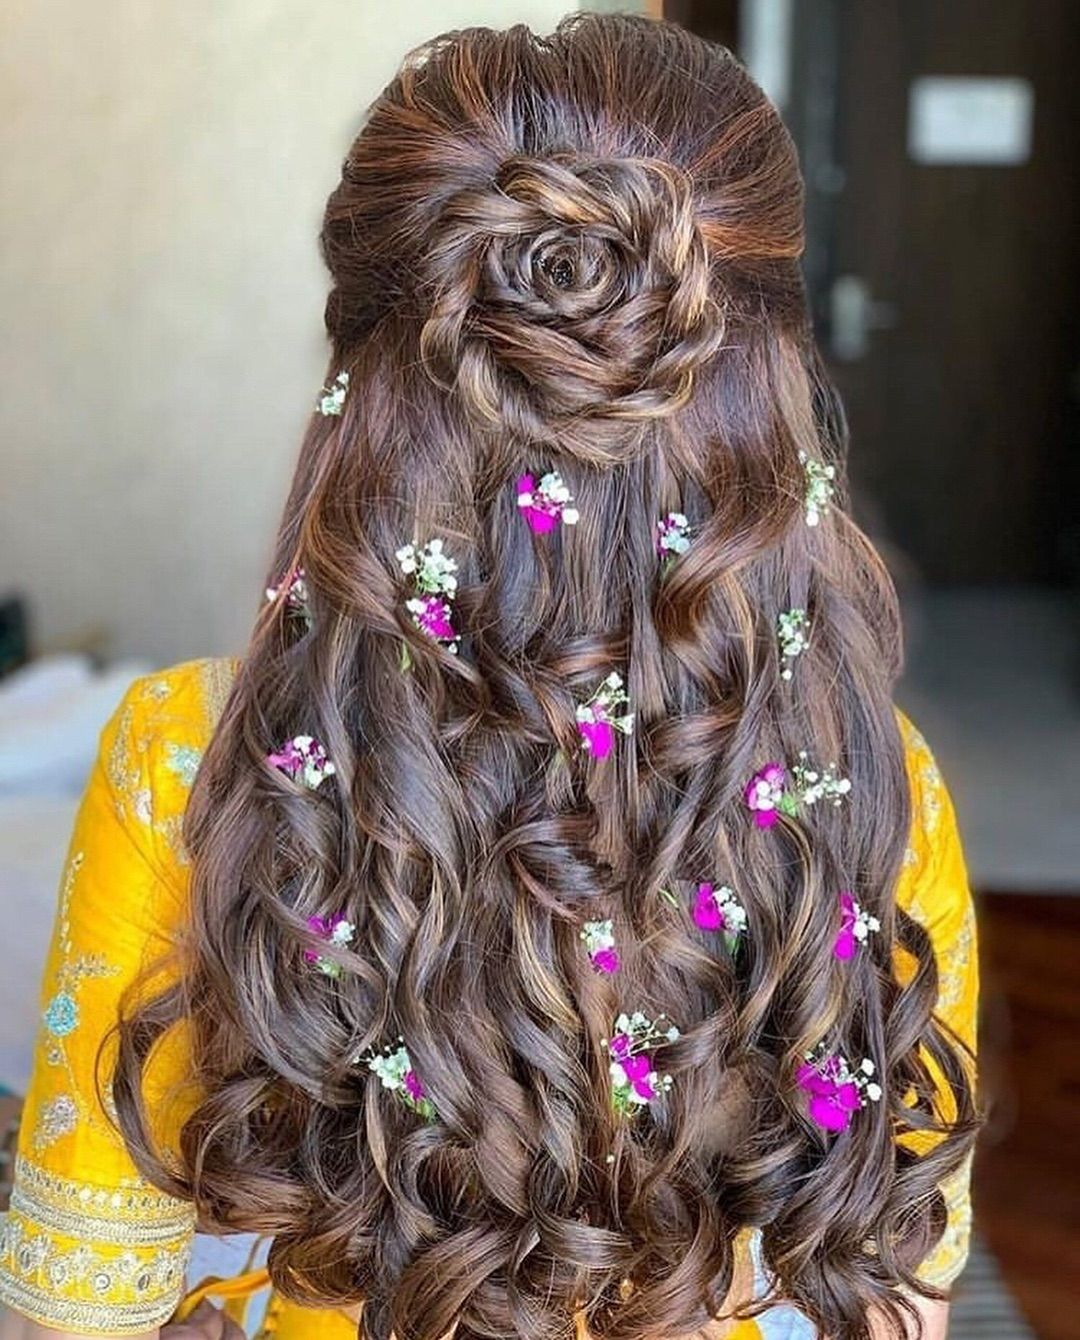 25 Pre Wedding Hairstyles For Mehndi Haldi Or More Functions Hair Styles Long Hair Styles Open Hairstyles